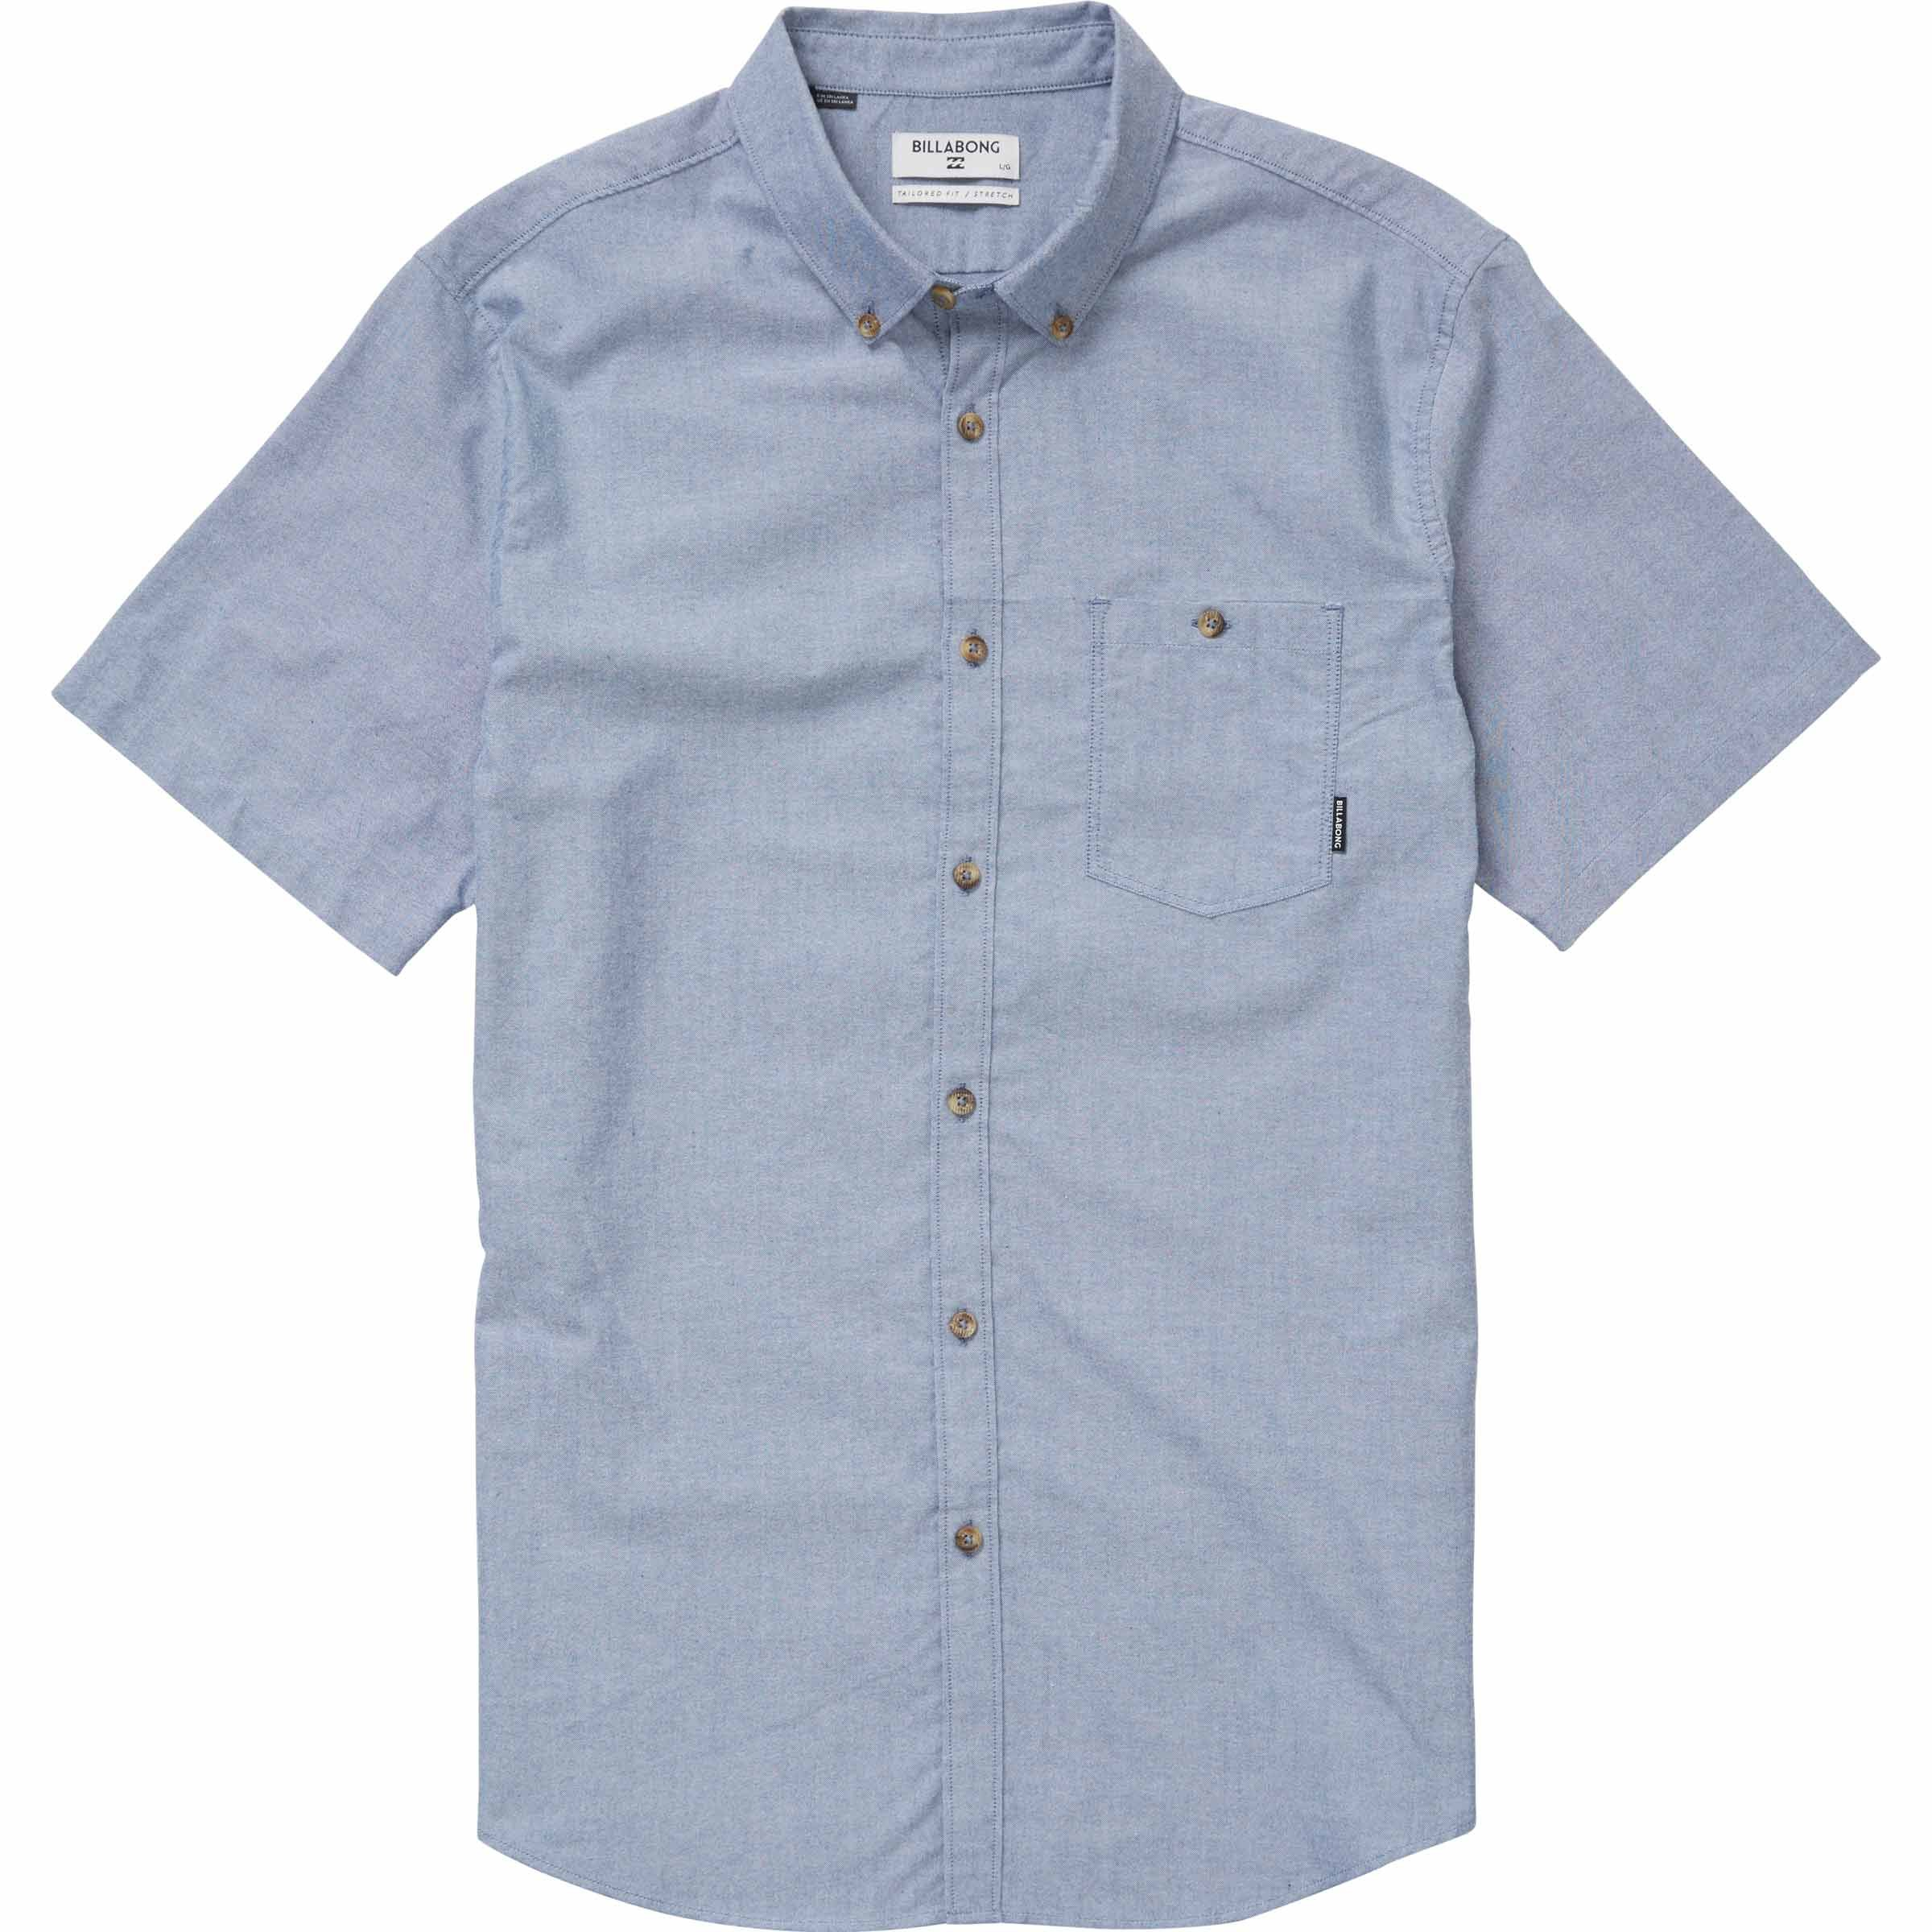 Billabong Men's All Day Oxford Short Sleeve Shirt, Blue, XL by Billabong (Image #1)